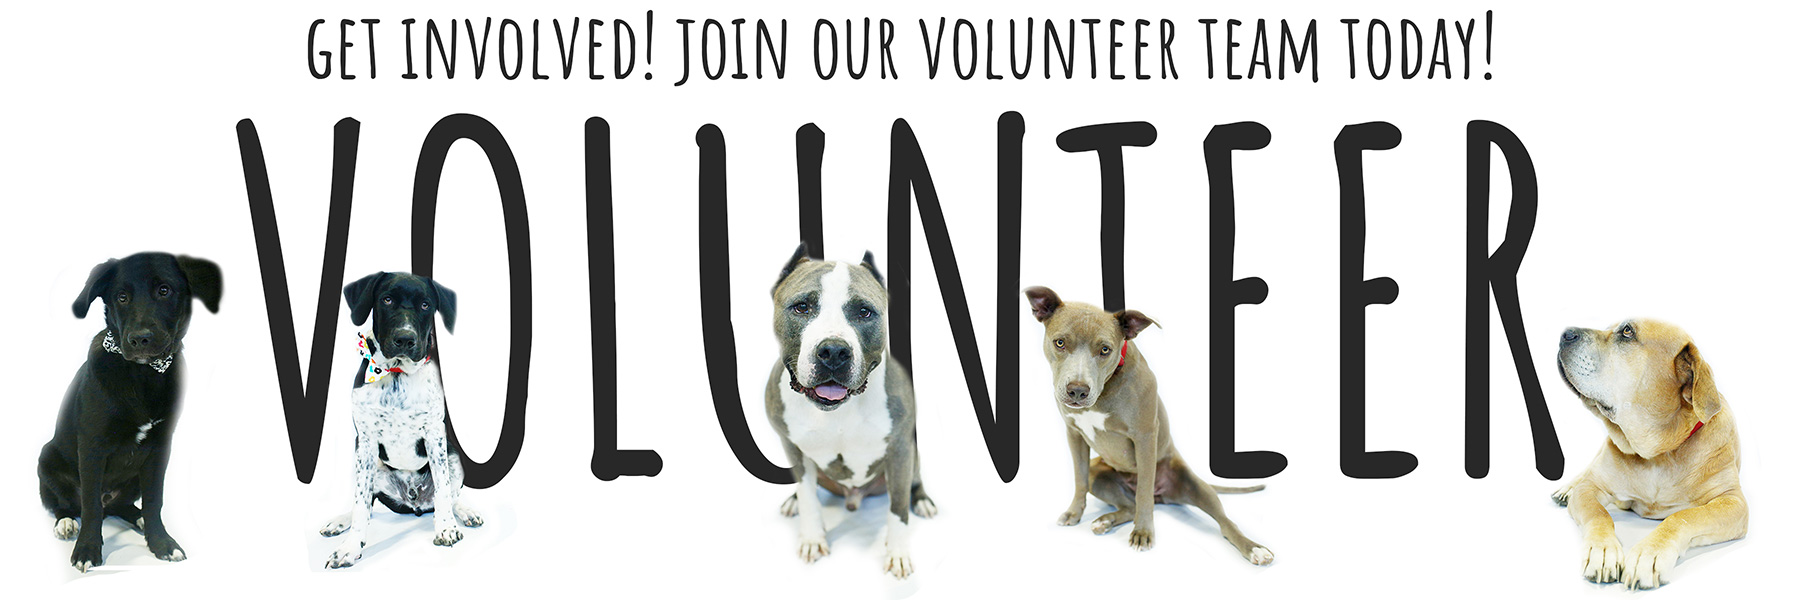 Paws For Live Volunteer program